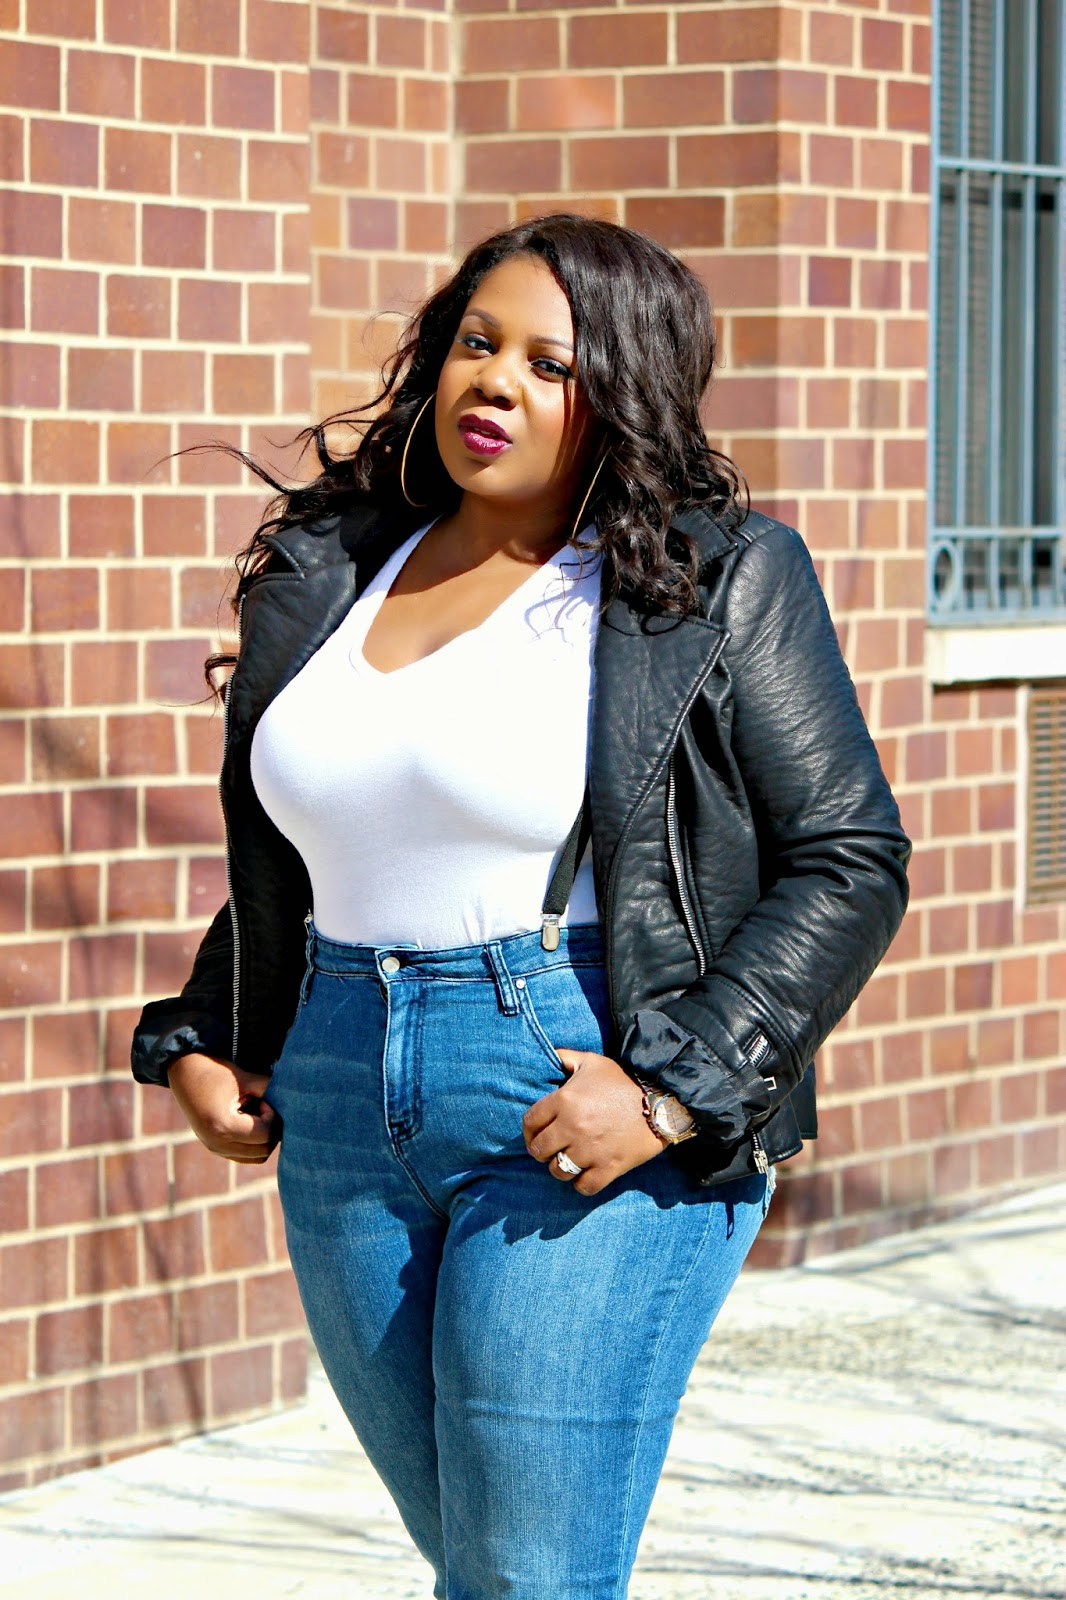 HOW TO STYLE WEAR HIGH WAIST FLARE JEANS